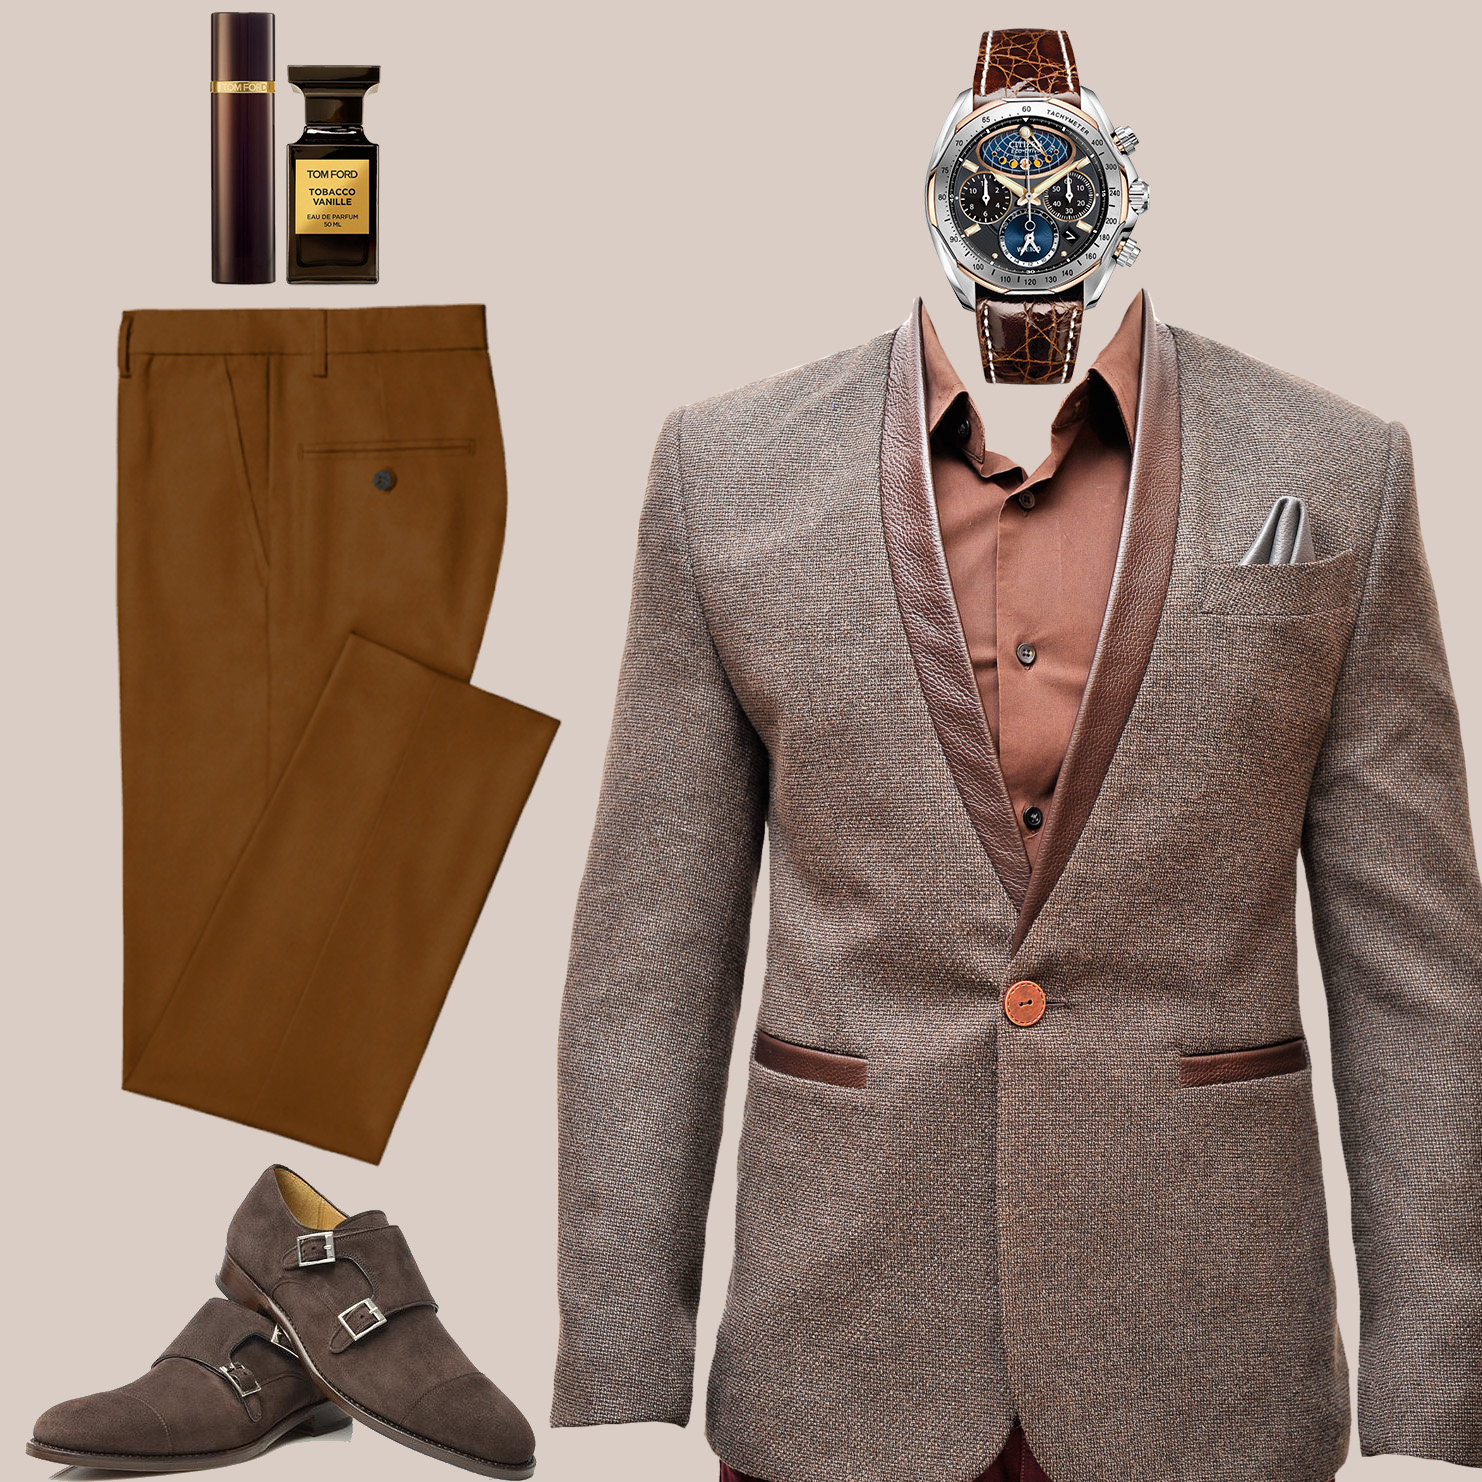 designer sports coat outfit masquerade ball